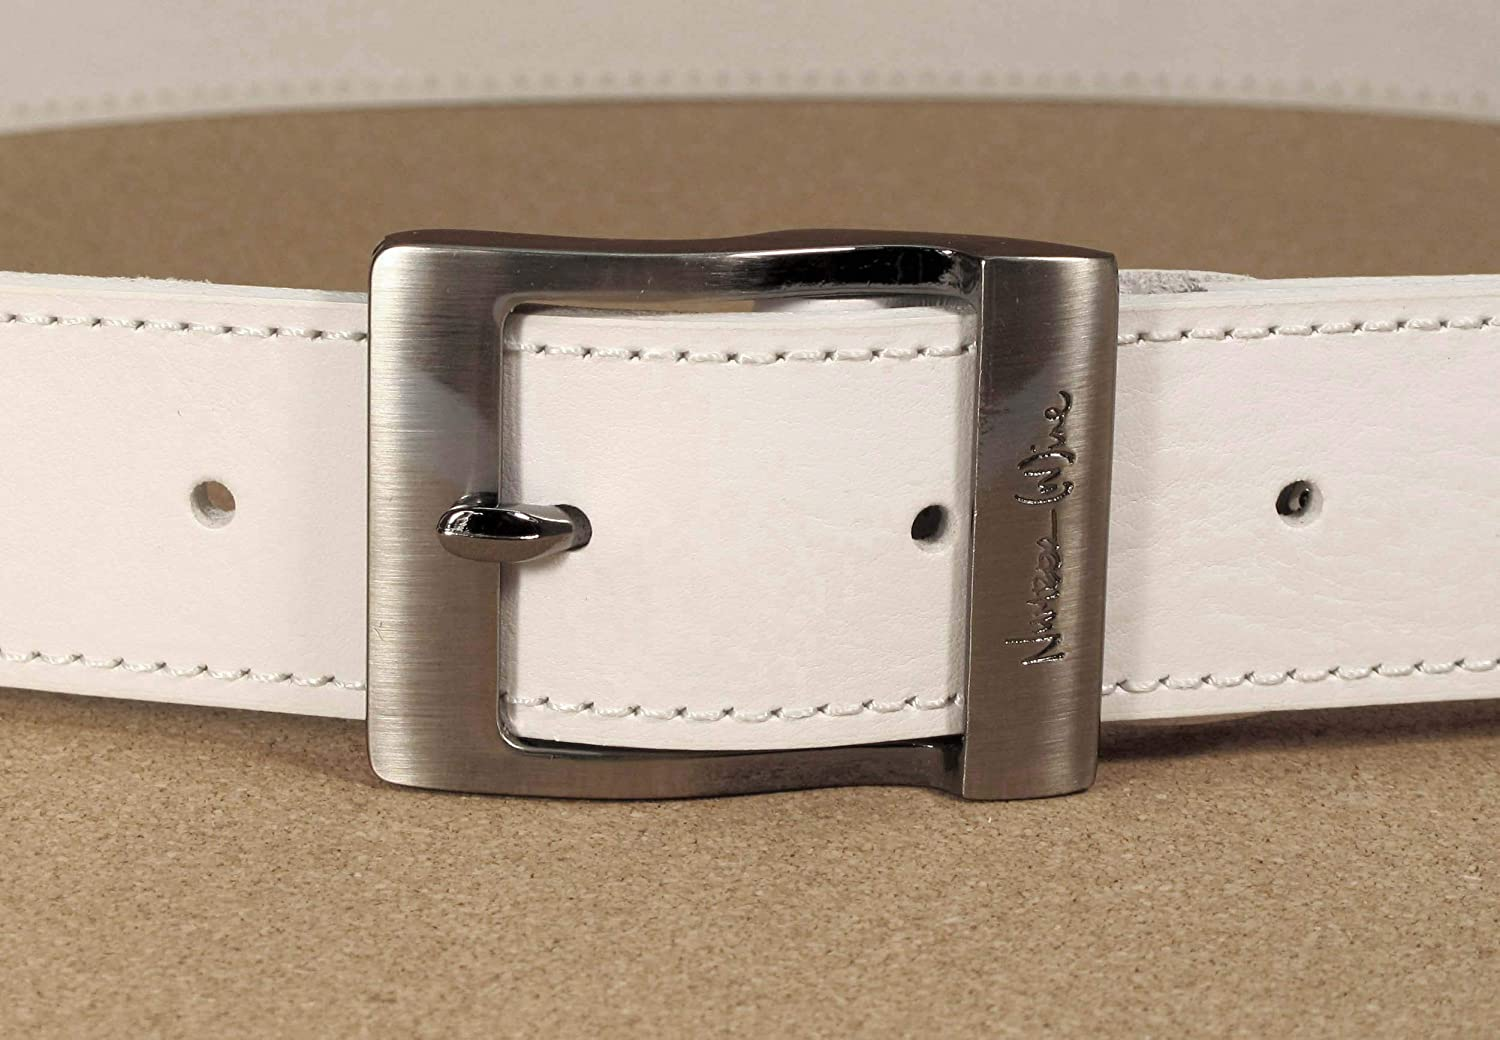 CM1 Mens Real Genuine Leather White Belt 1.5 Wide S-XL Thick Long Casual Jeans